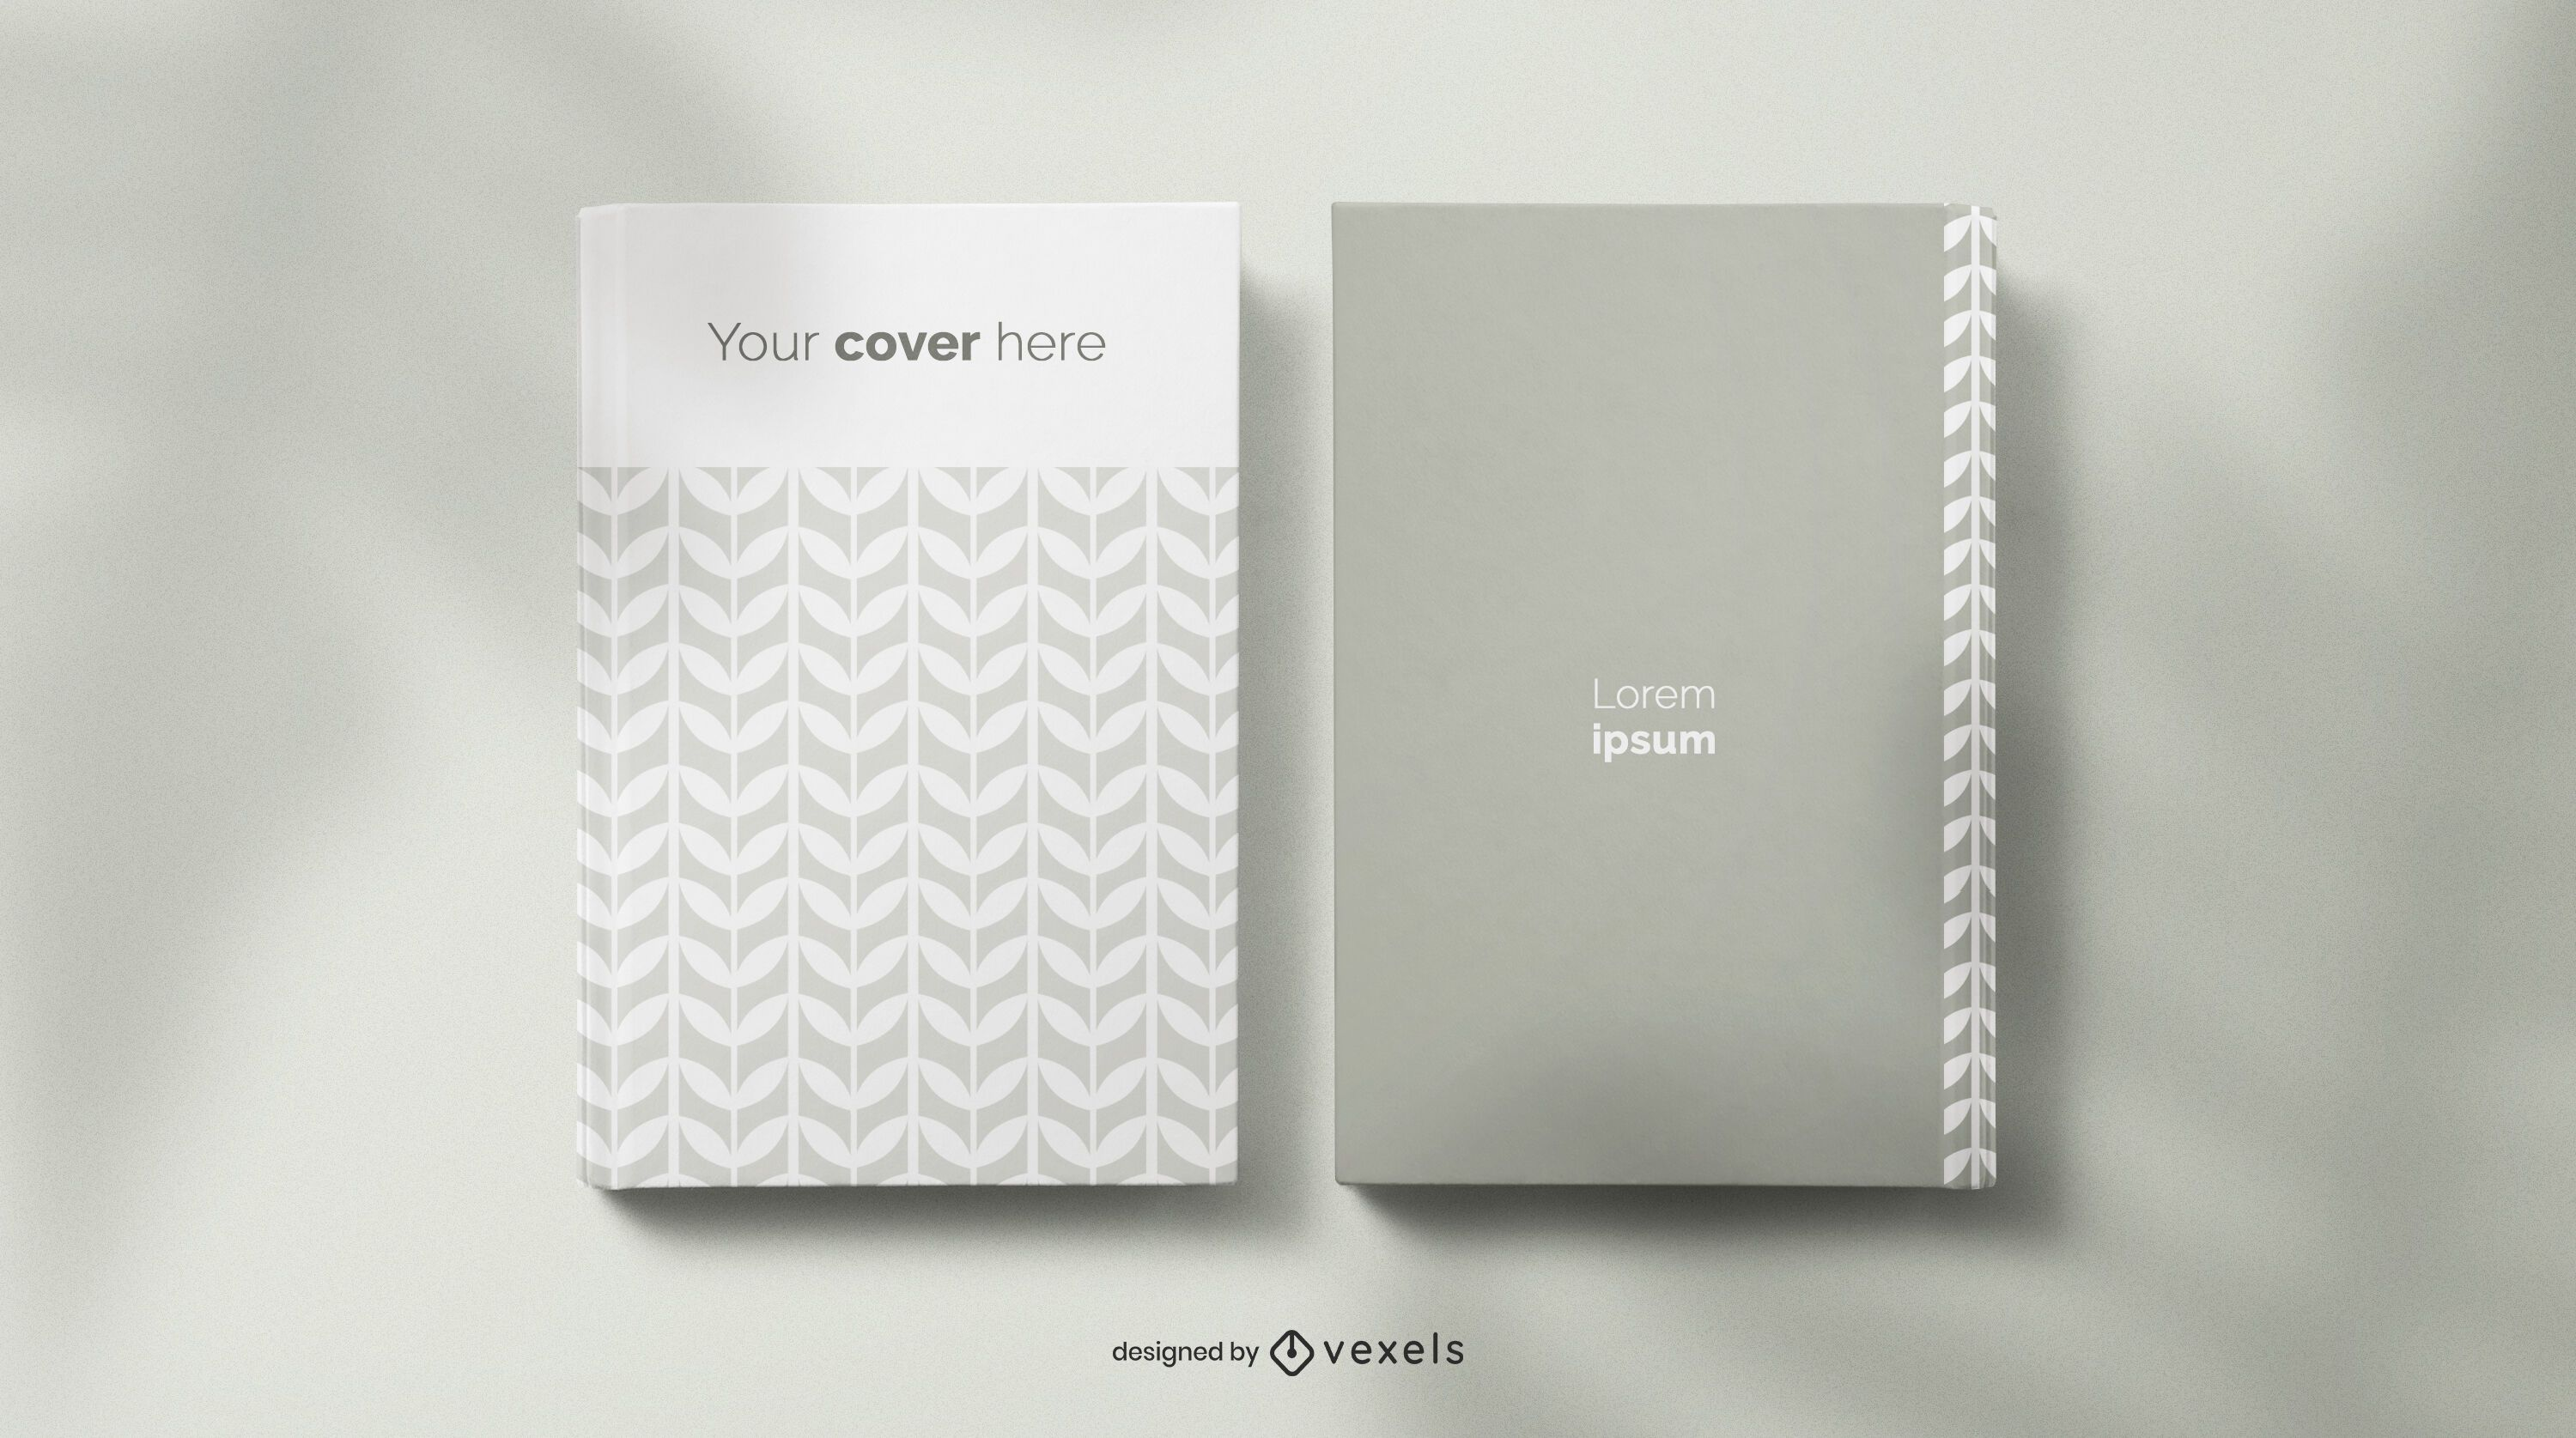 Book and notebook mockup composition